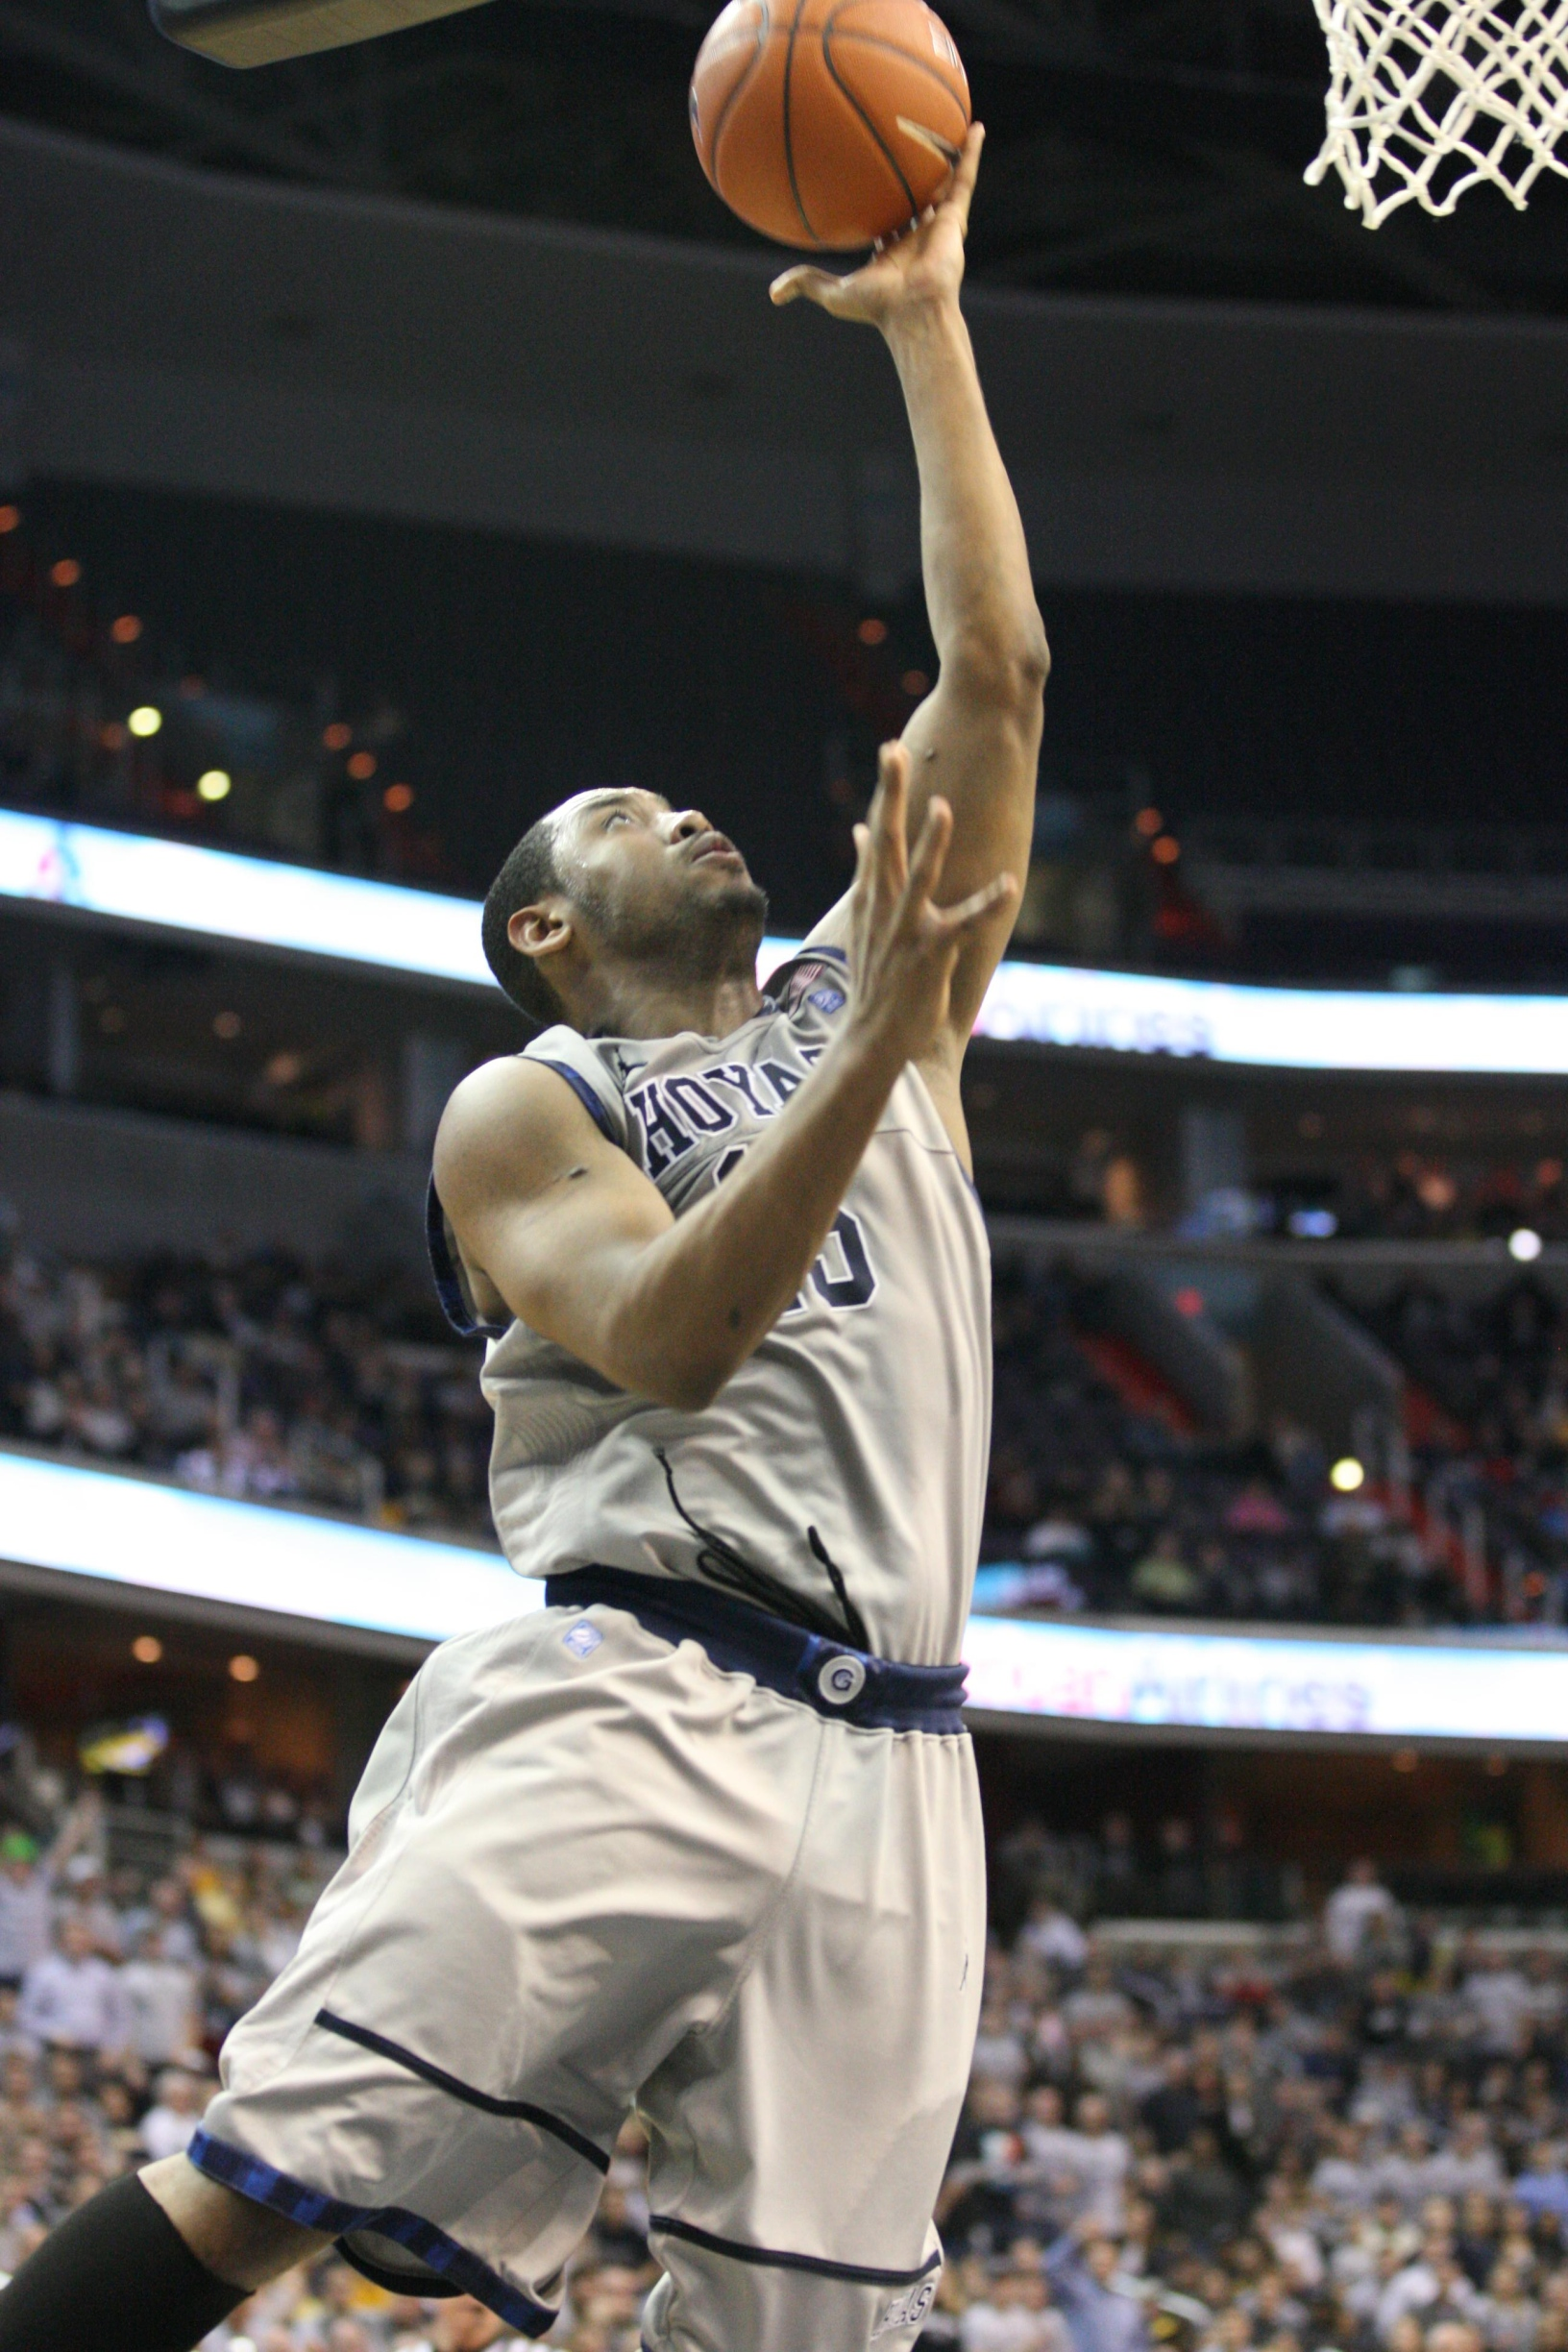 CHRIS BIEN/THE HOYA Senior guard Austin Freeman didn't shoot the lights out on Sunday afternoon, but his 17 points and presence on the floor keyed Georgetown's comeback win over Marquette.